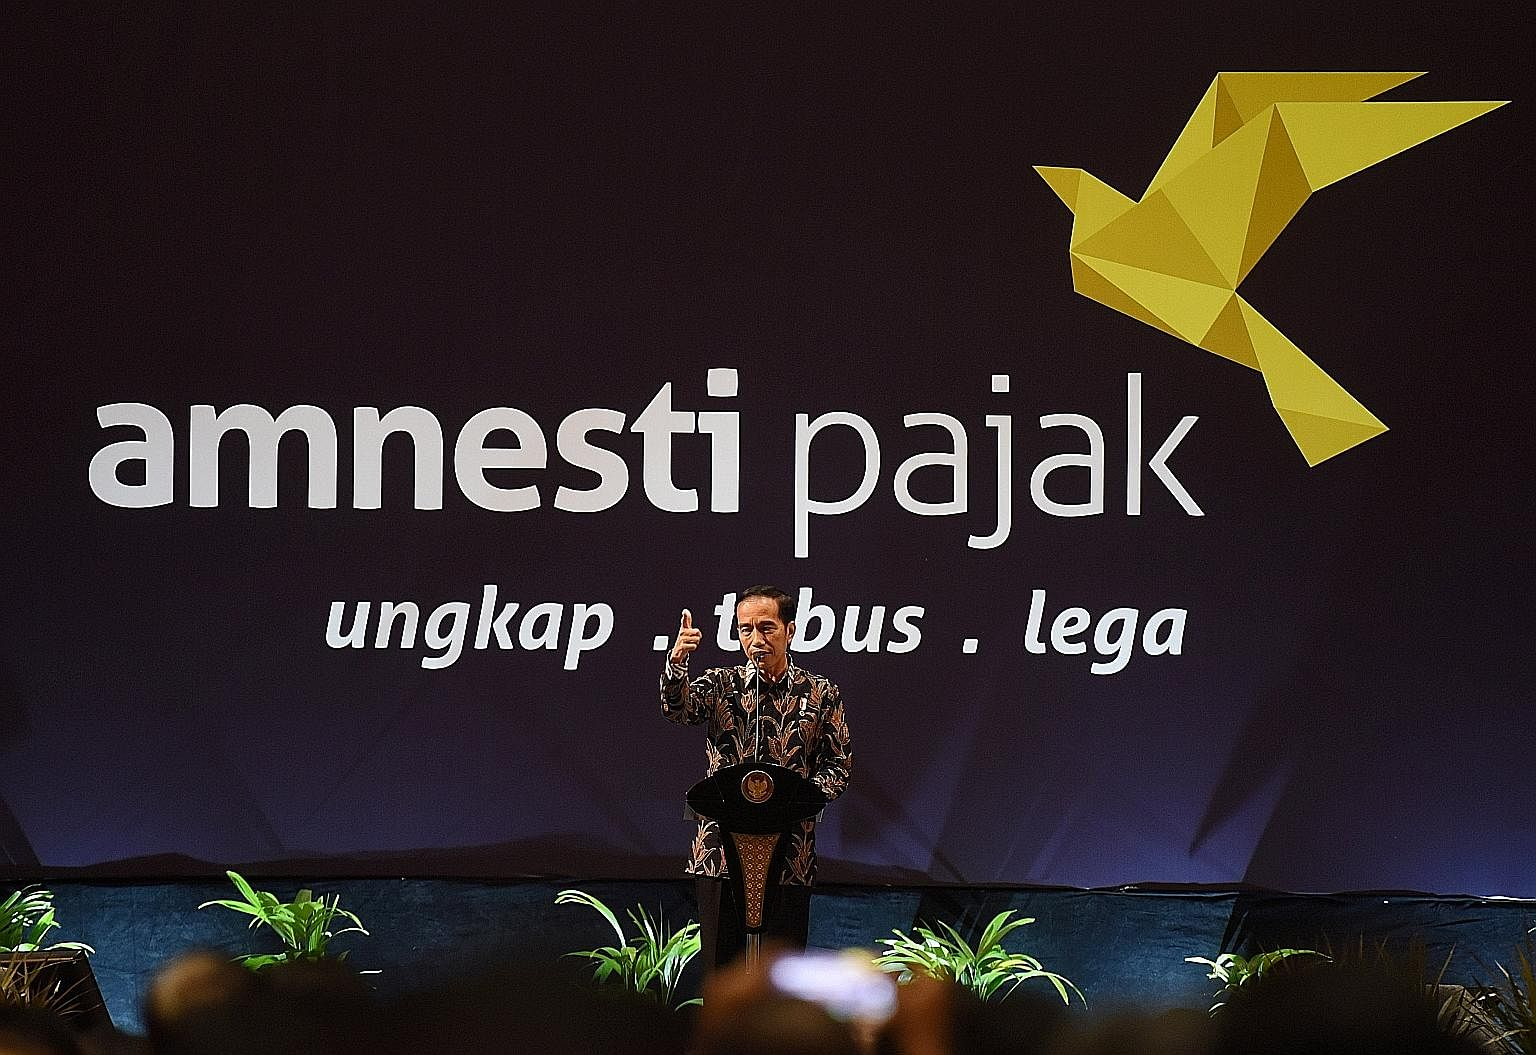 Indonesian President Joko Widodo announced a tax amnesty programme last year aimed at recovering billions of dollars lost to widespread tax evasion.